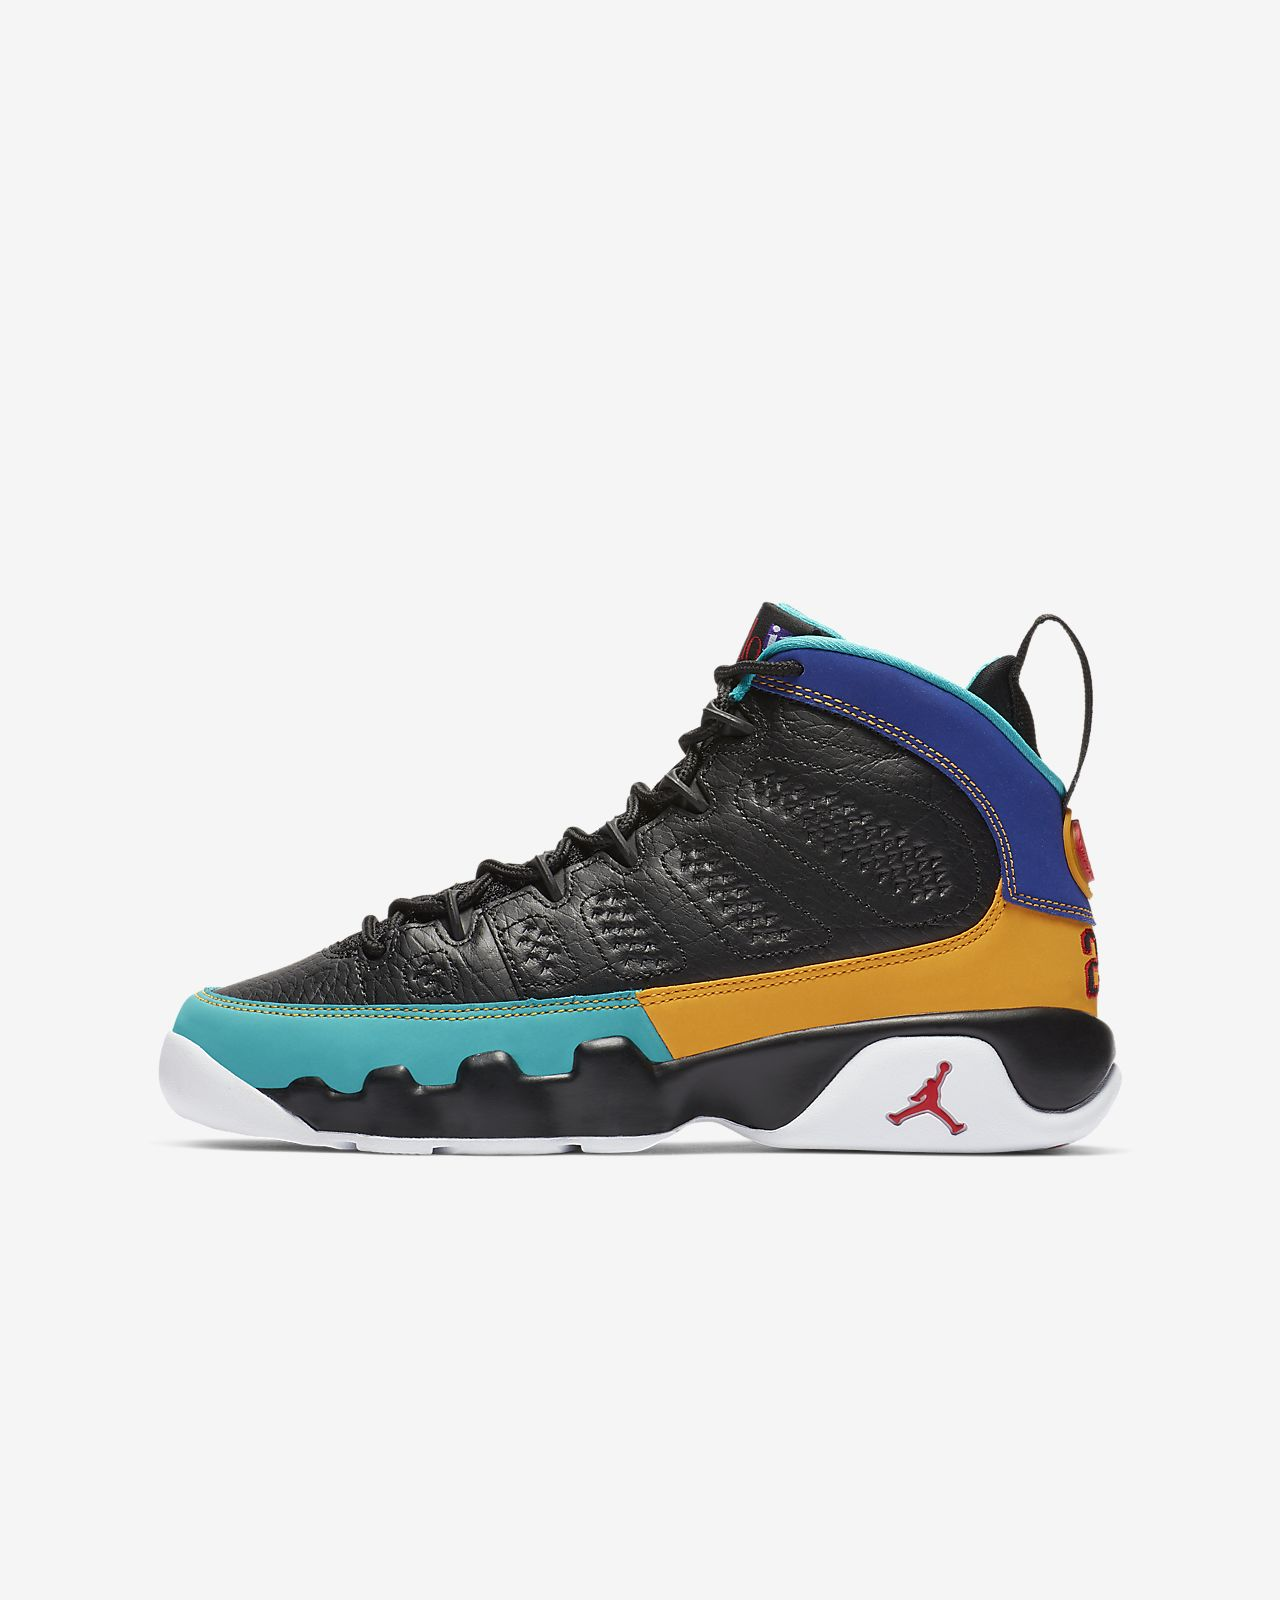 9b4b8b9d6f35 Air Jordan 9 Retro Big Kids  Shoe. Nike.com